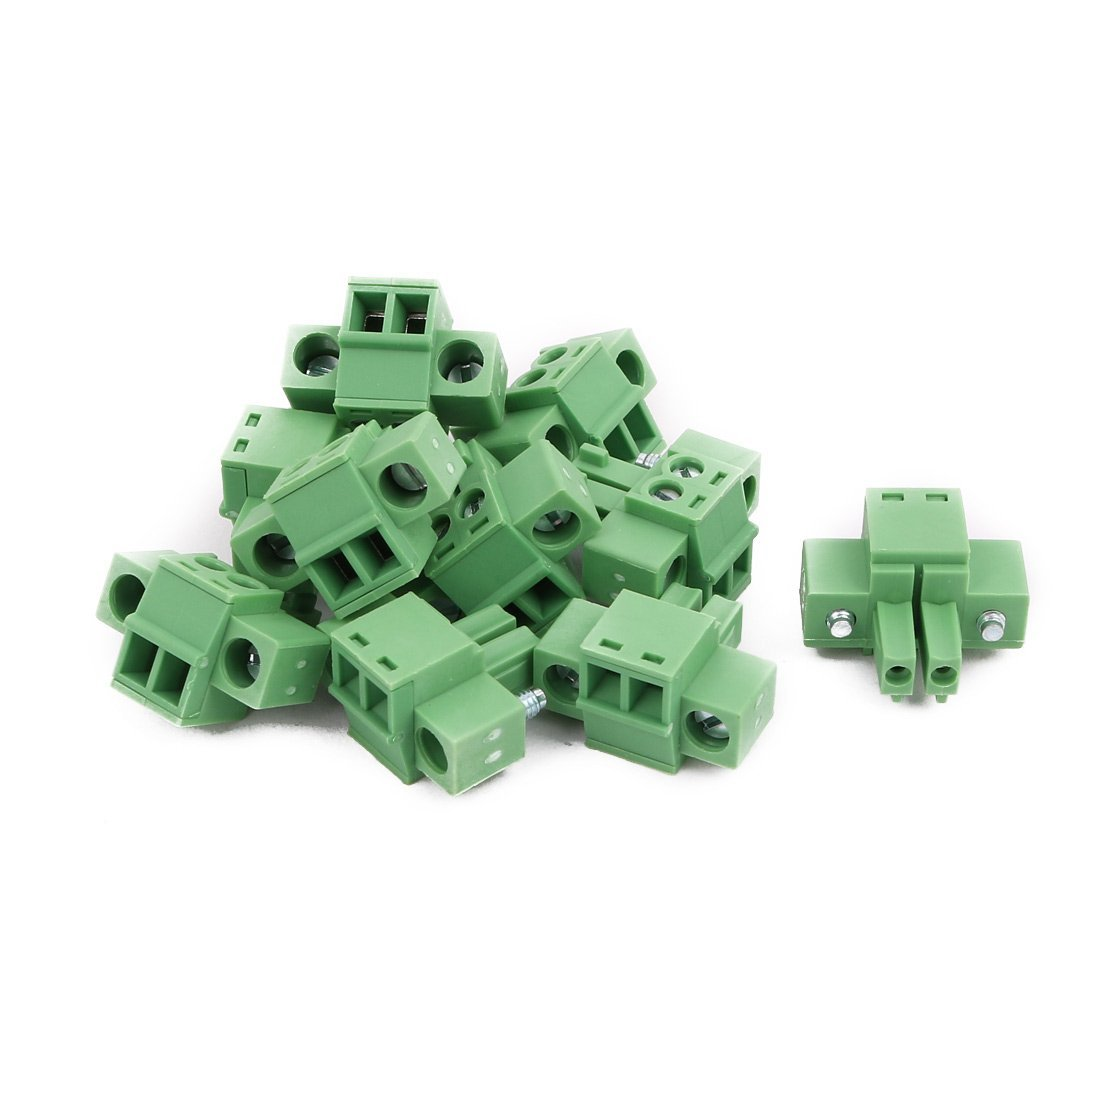 uxcell 10Pcs AC 300V 8A 3.5mm Pitch 2P PCB Mounted Terminal Block Wire Connection Green